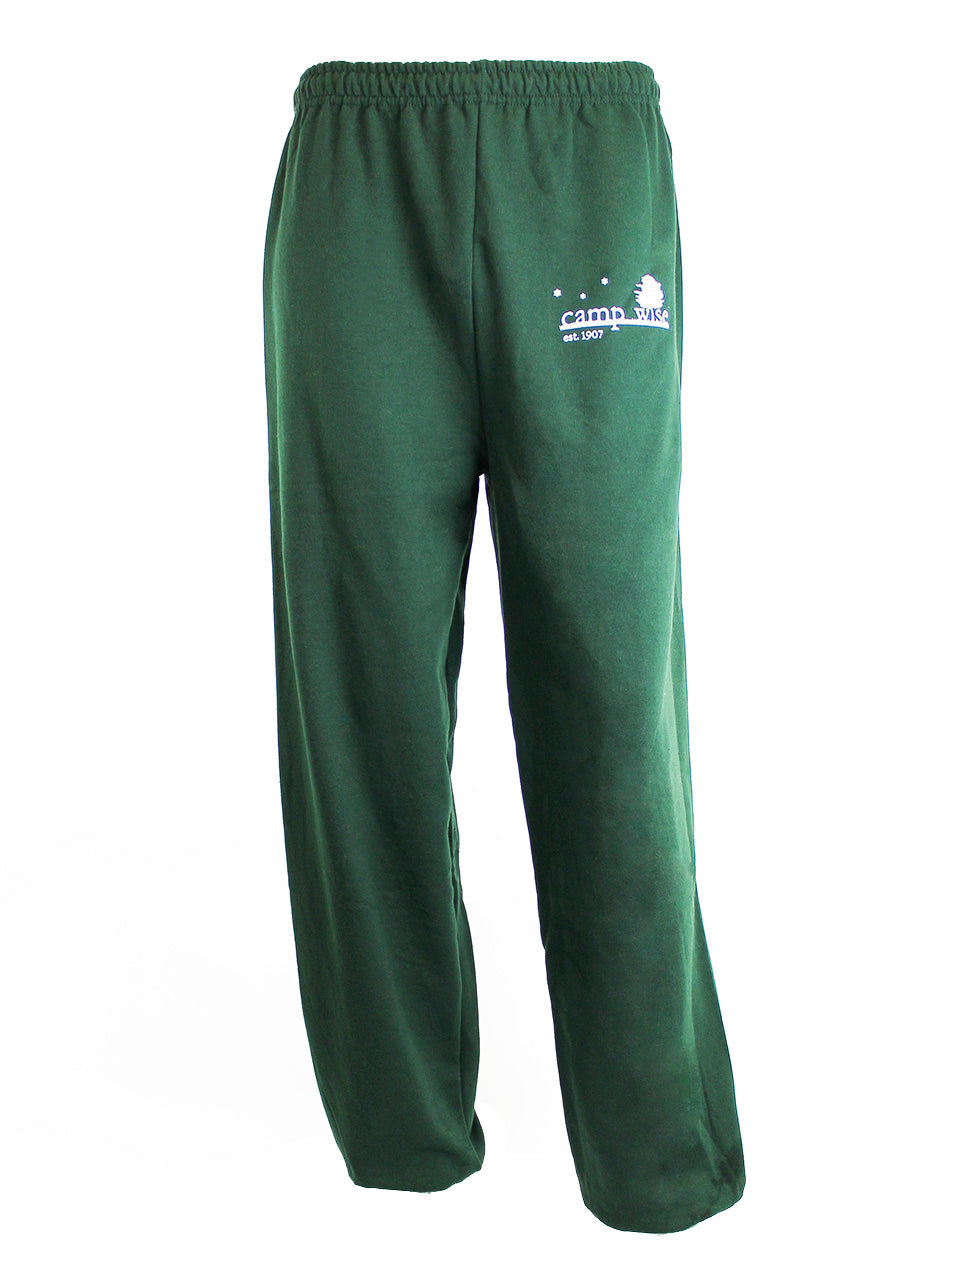 Camp Wise Open Bottom Sweatpants